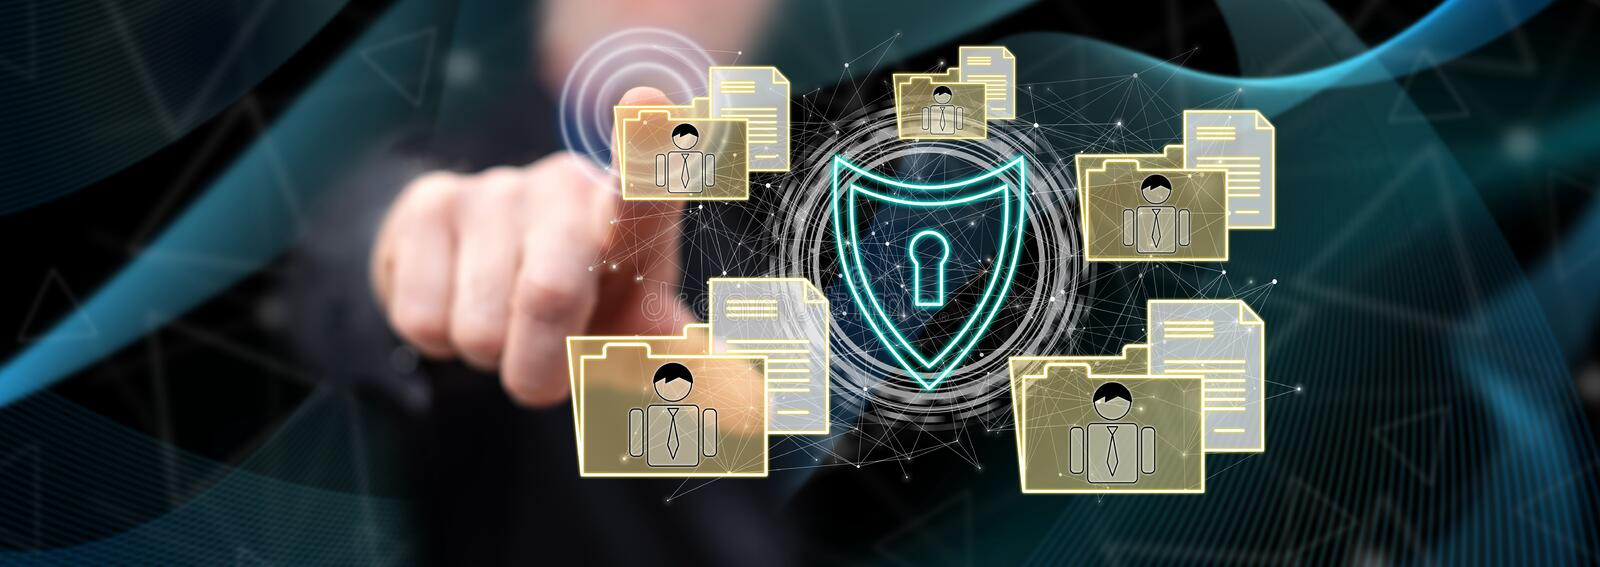 Man touching a personal data security concept royalty free stock image